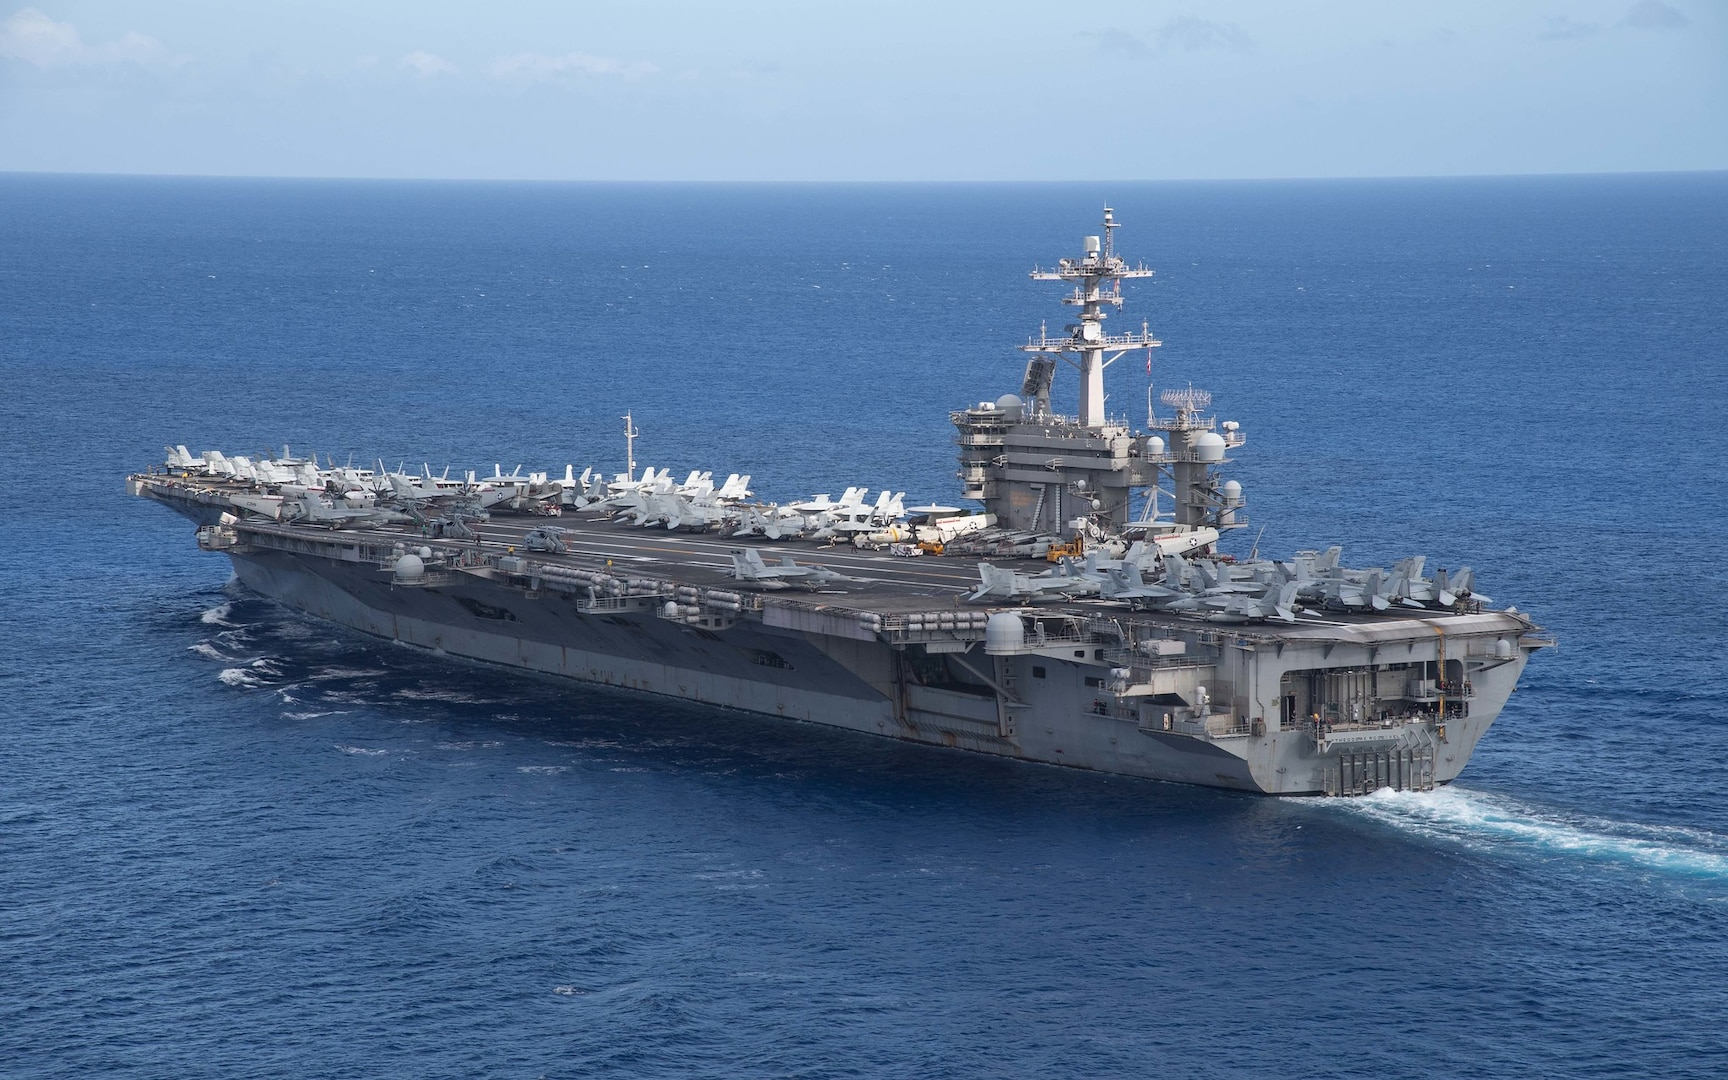 Theodore Roosevelt, Nimitz Carrier Strike Groups Operate Together in 7th Fleet